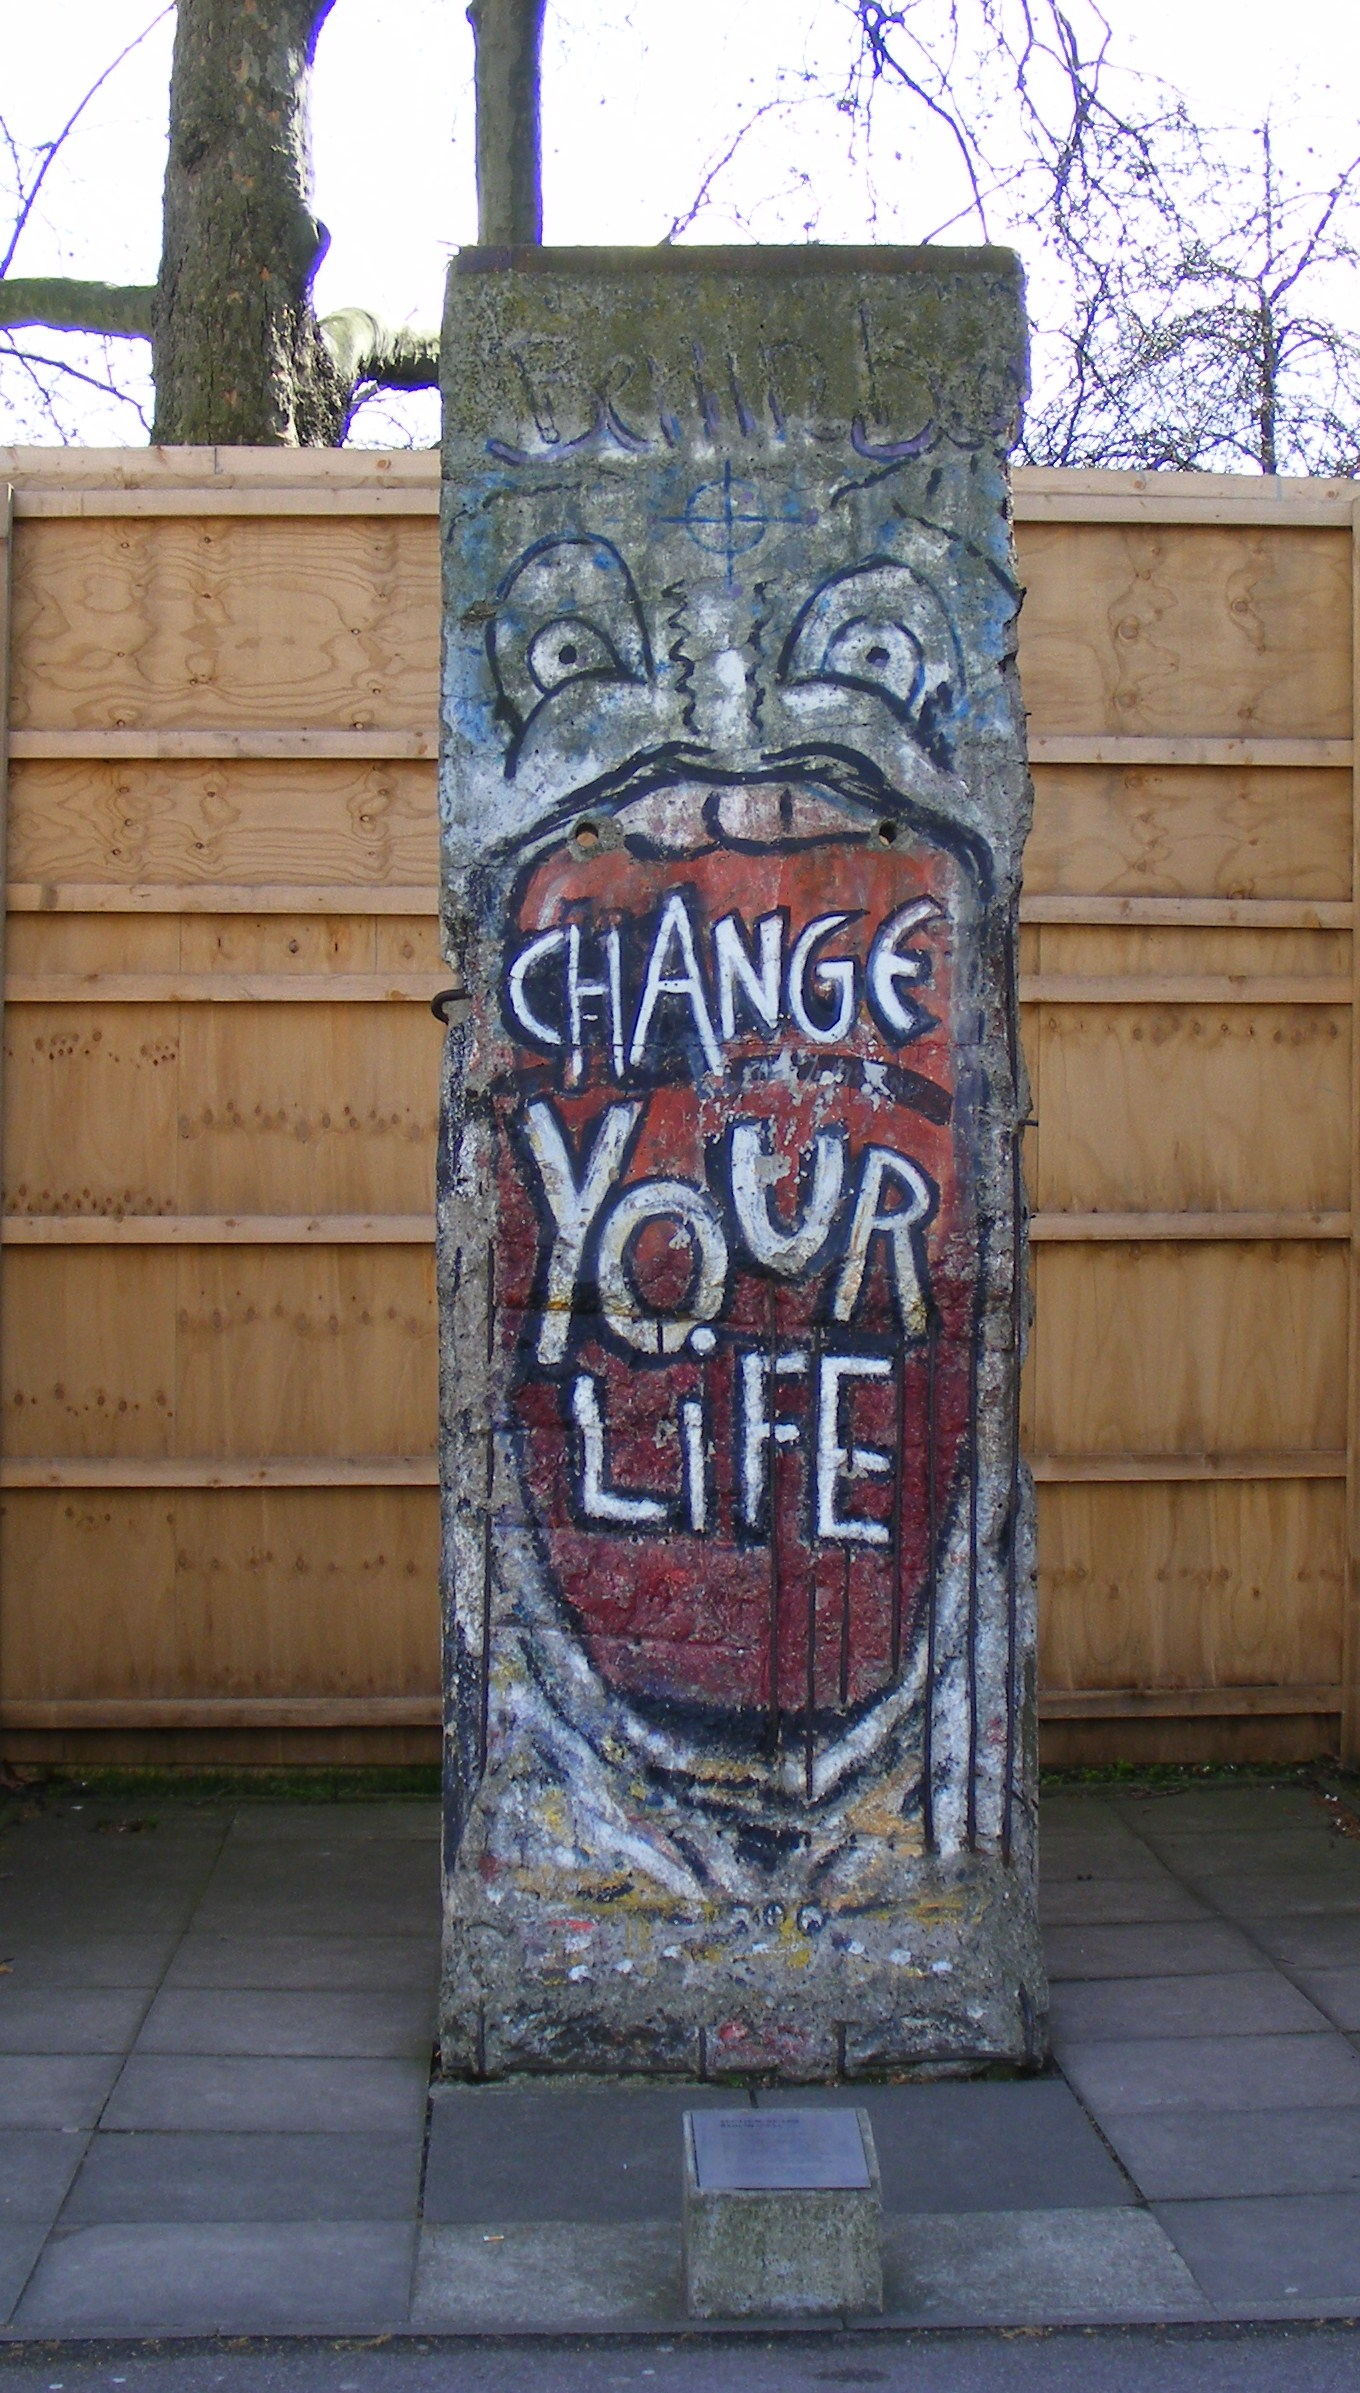 file berlin wall graffiti 39 change your life 39 by indiano. Black Bedroom Furniture Sets. Home Design Ideas